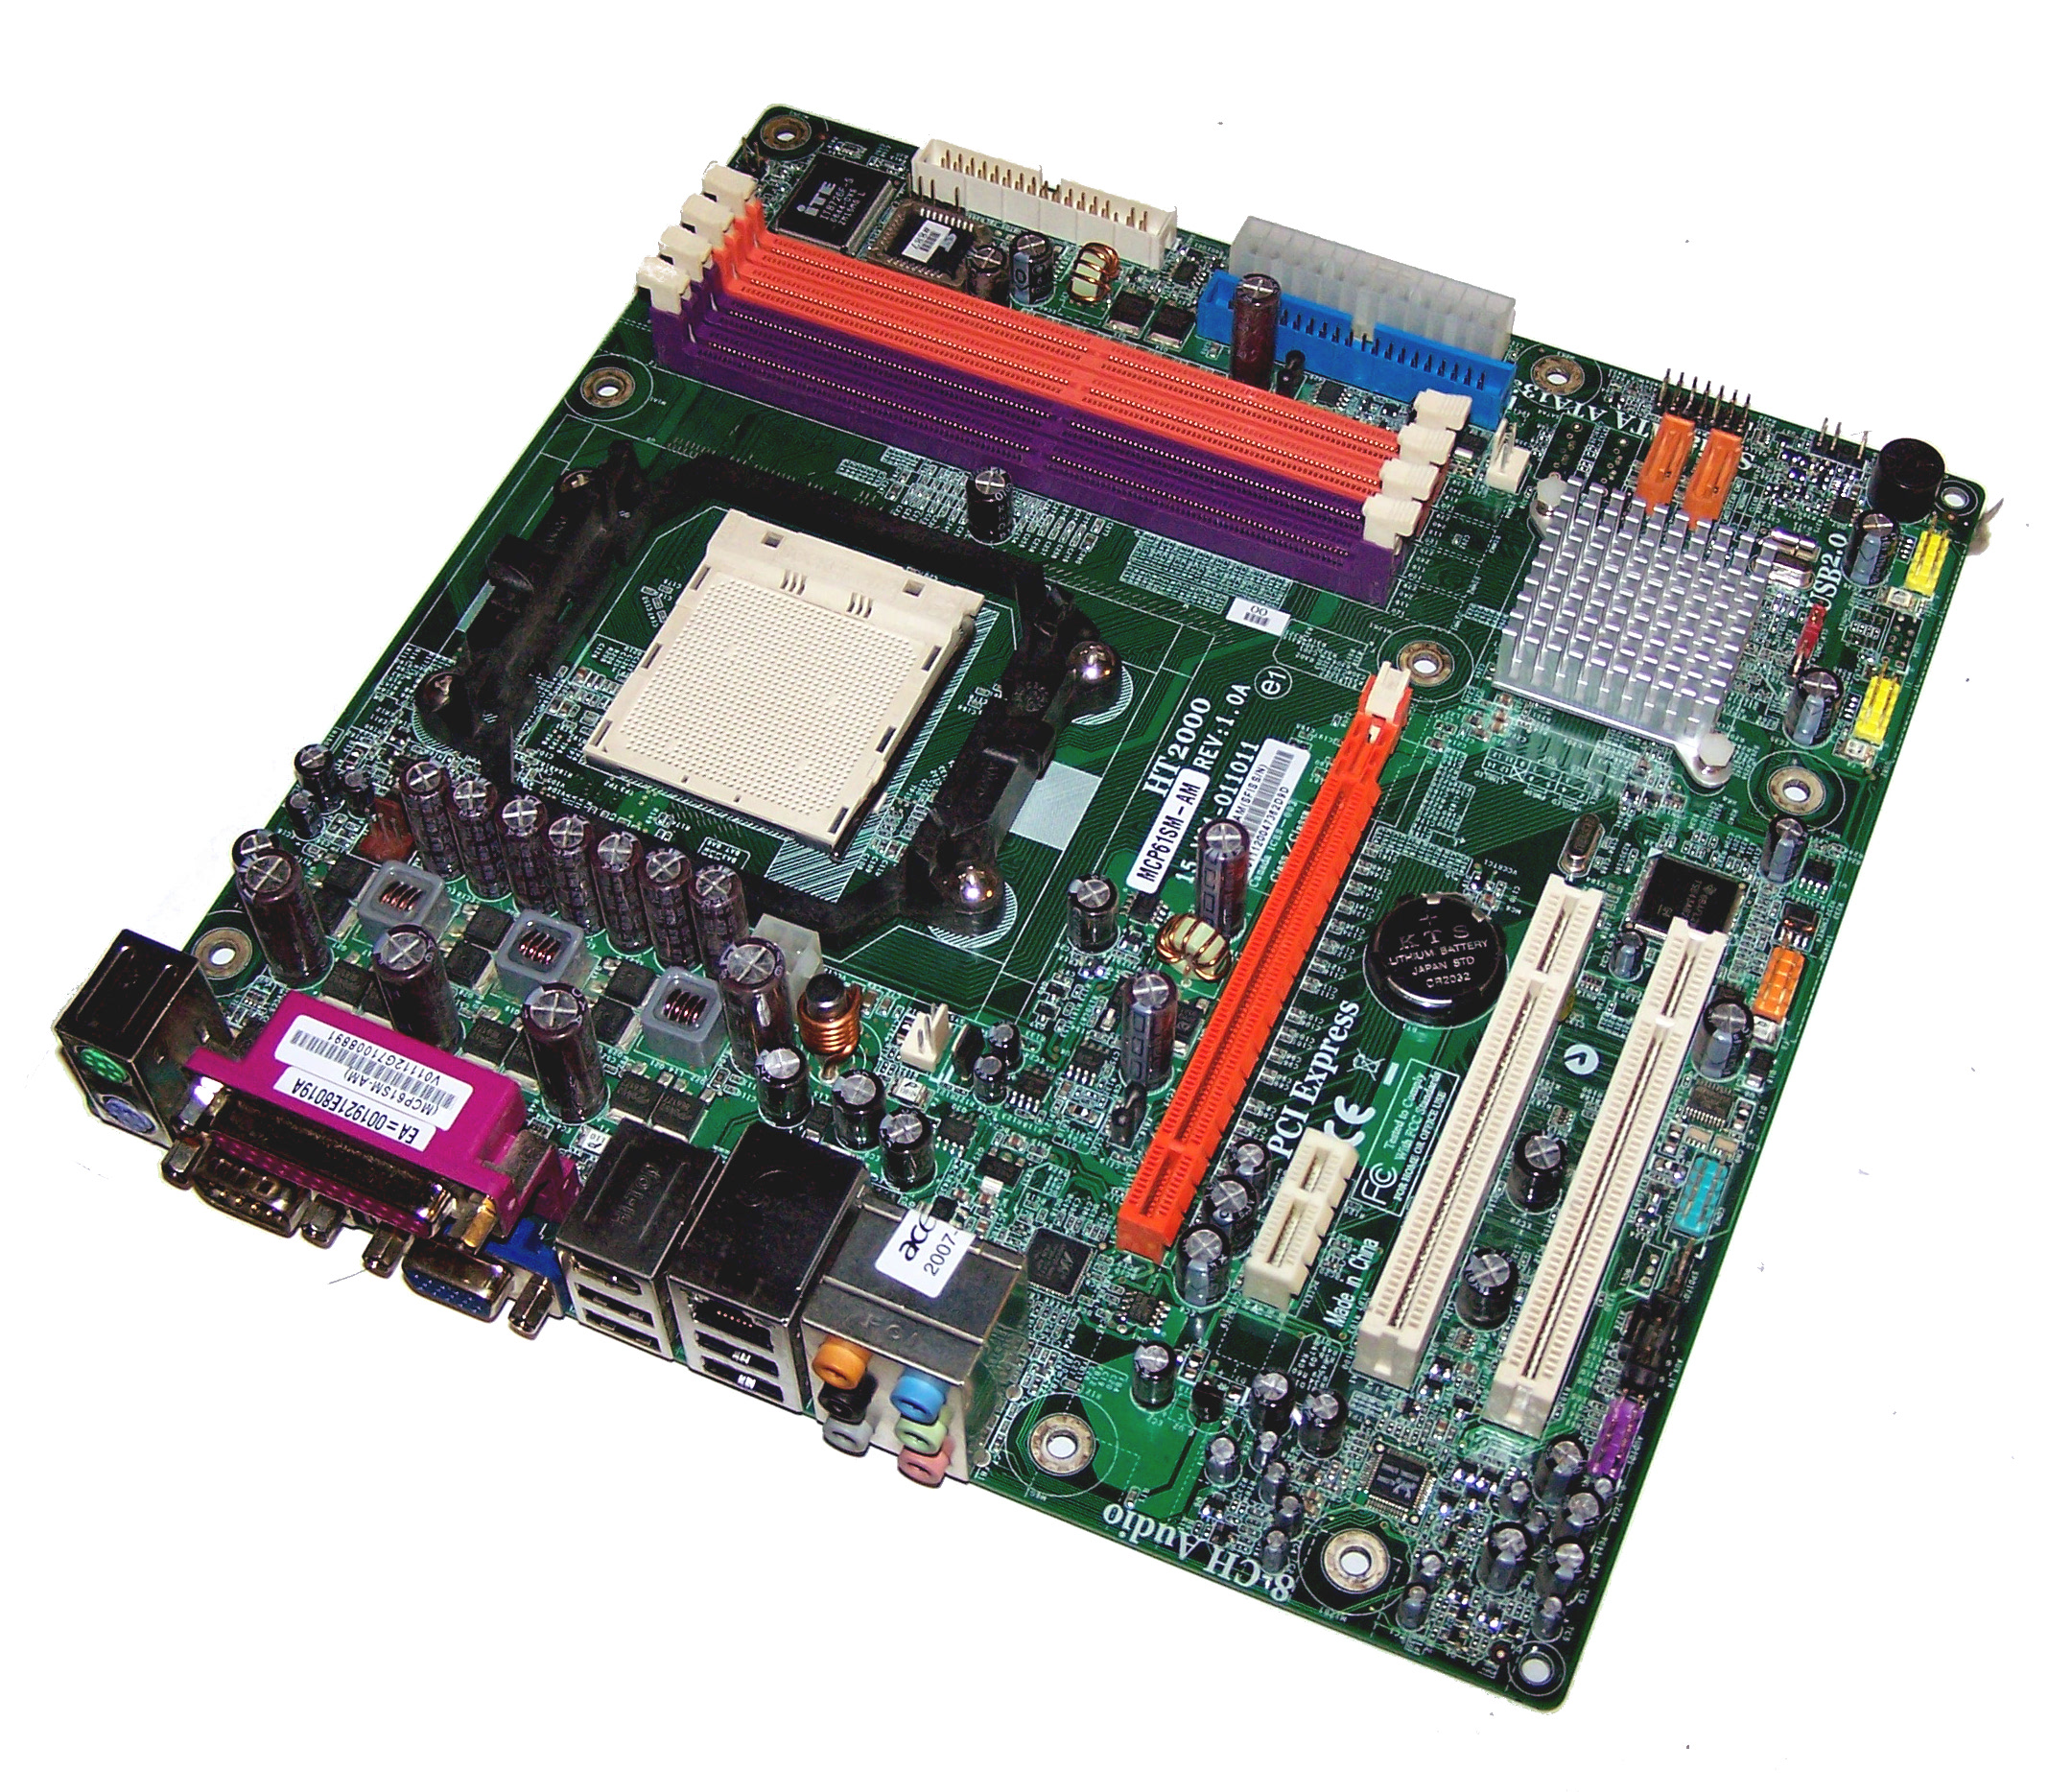 Acer Mcp61sm Am Motherboard Drivers Ht2000 Wiring Diagram